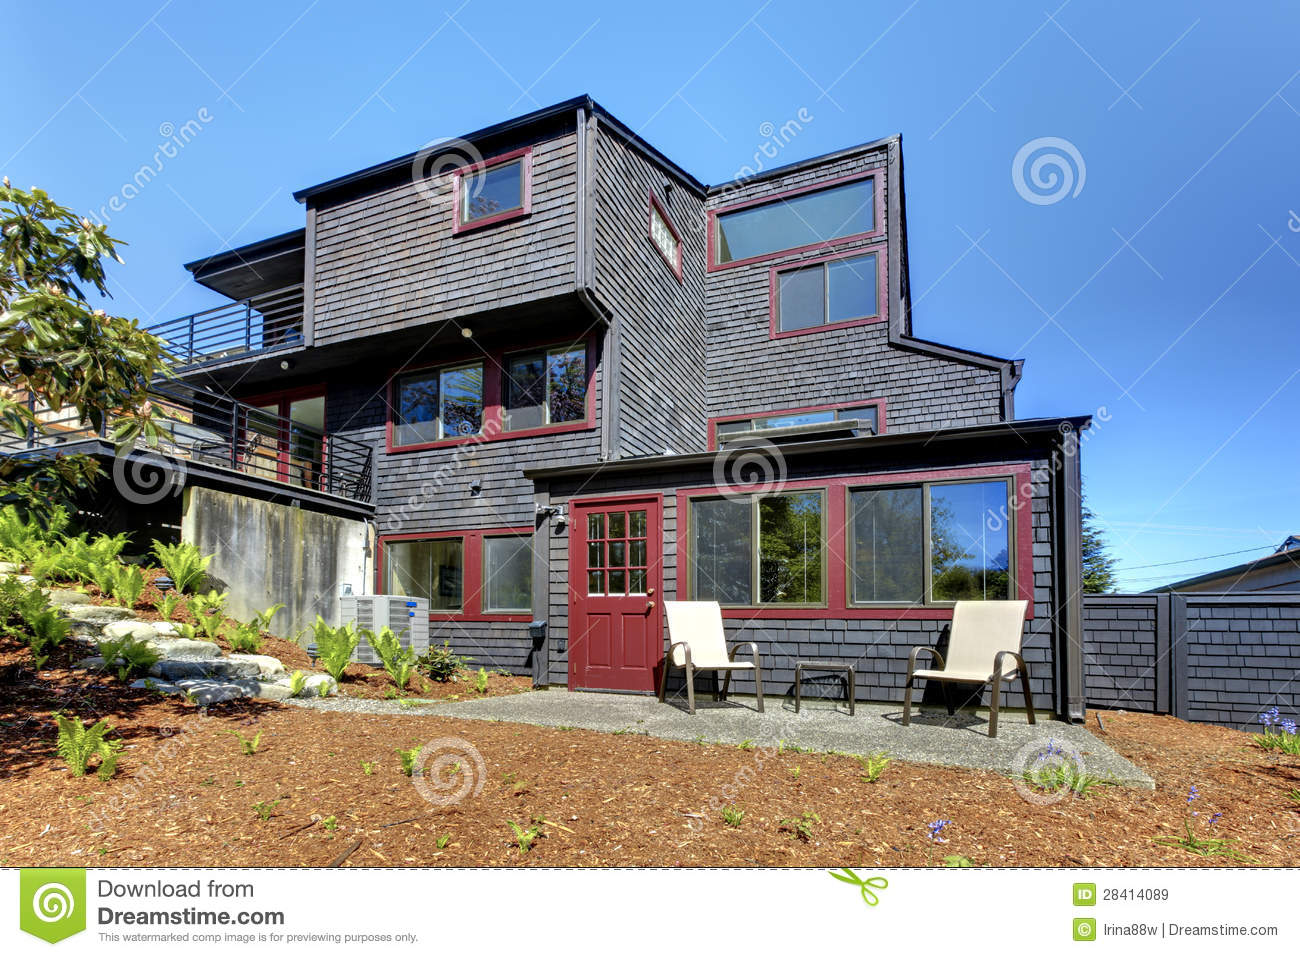 Black Wooden Modern House With Spring Backyard. oyalty Free Stock ... - ^